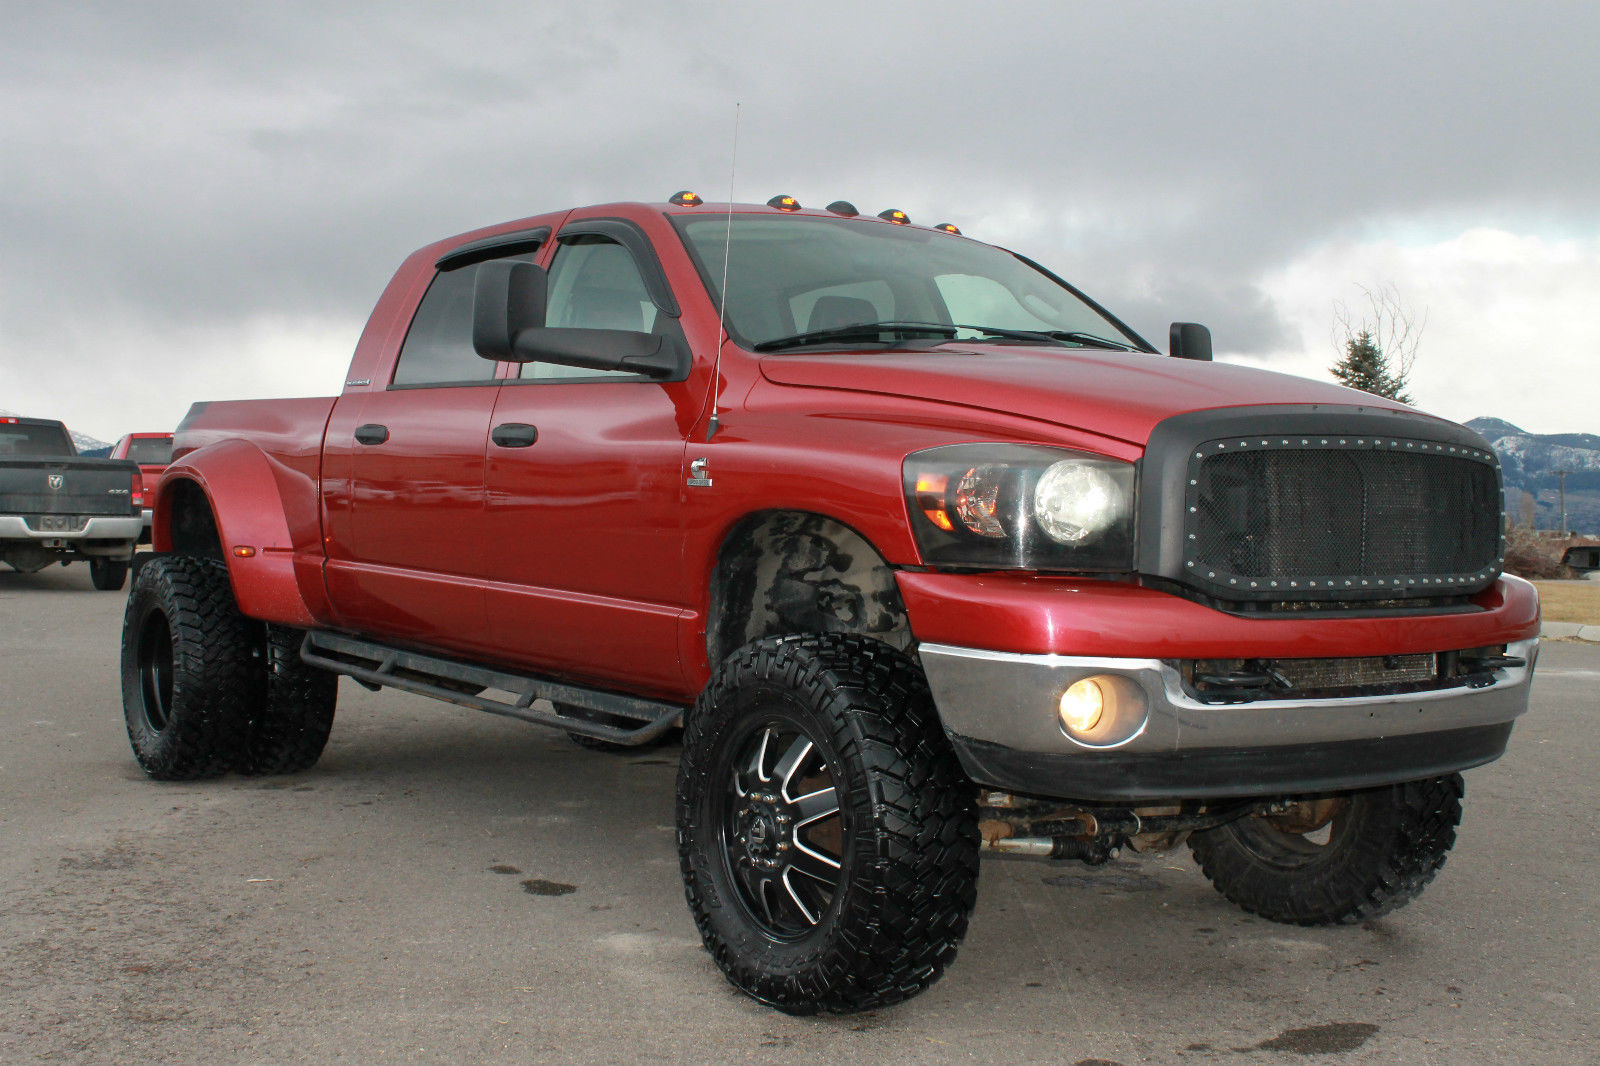 Dodge Ram 3500 Mega Cab Dually Pictures to pin on Pinterest